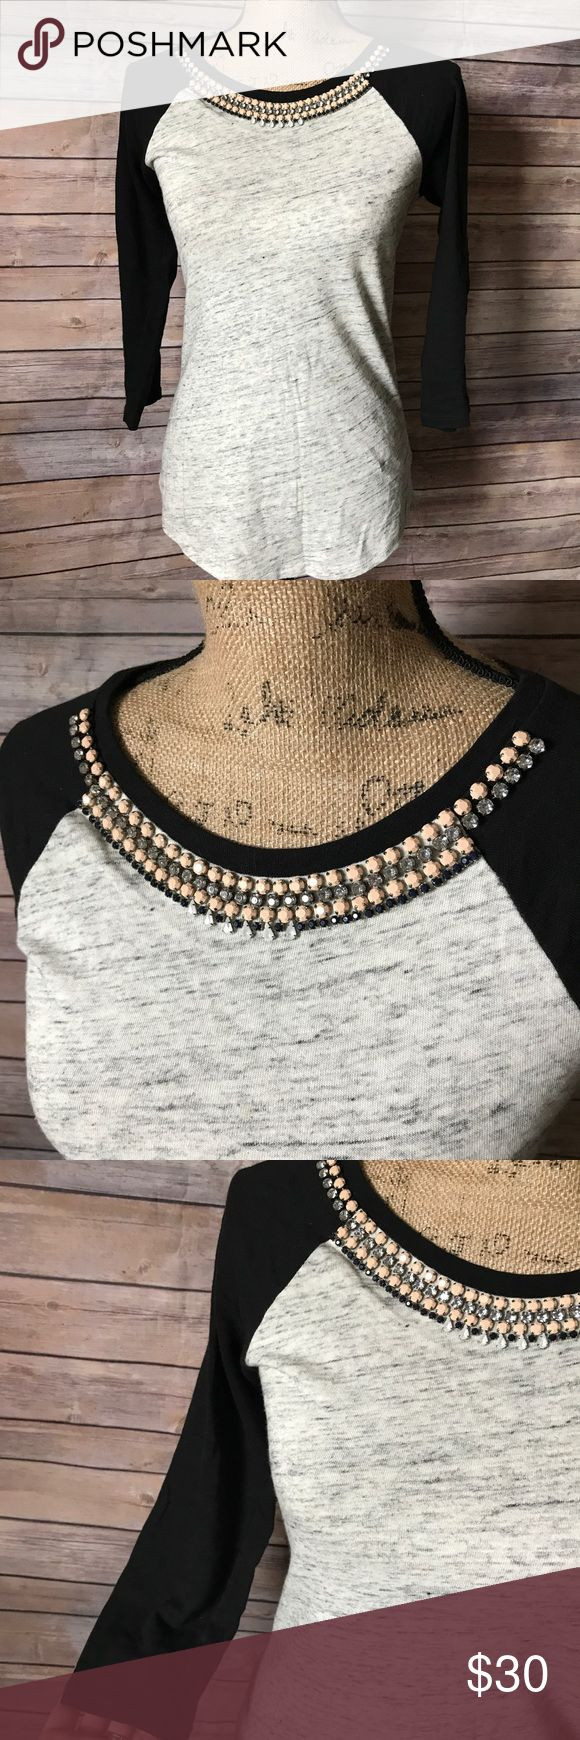 J.Crew Jeweled Collar Baseball Tee J.Crew baseball style tee. Beautiful beading around the collar. Perfect with a pair of cropped jeans! Size small. J. Crew Tops Tees - Long Sleeve